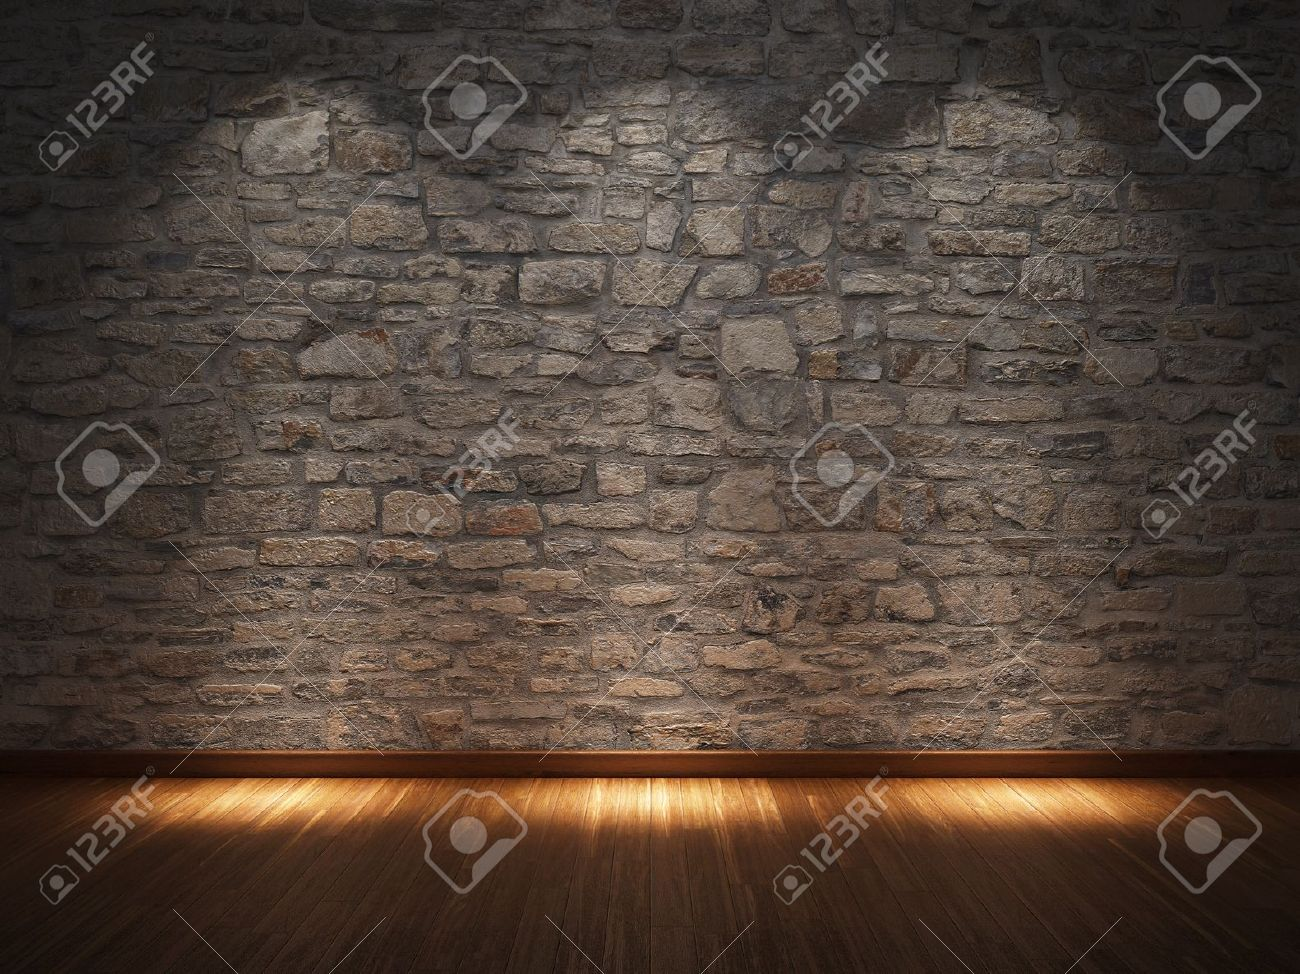 Interior Stone Wall interior room with stone wall and wooden floor stock photo